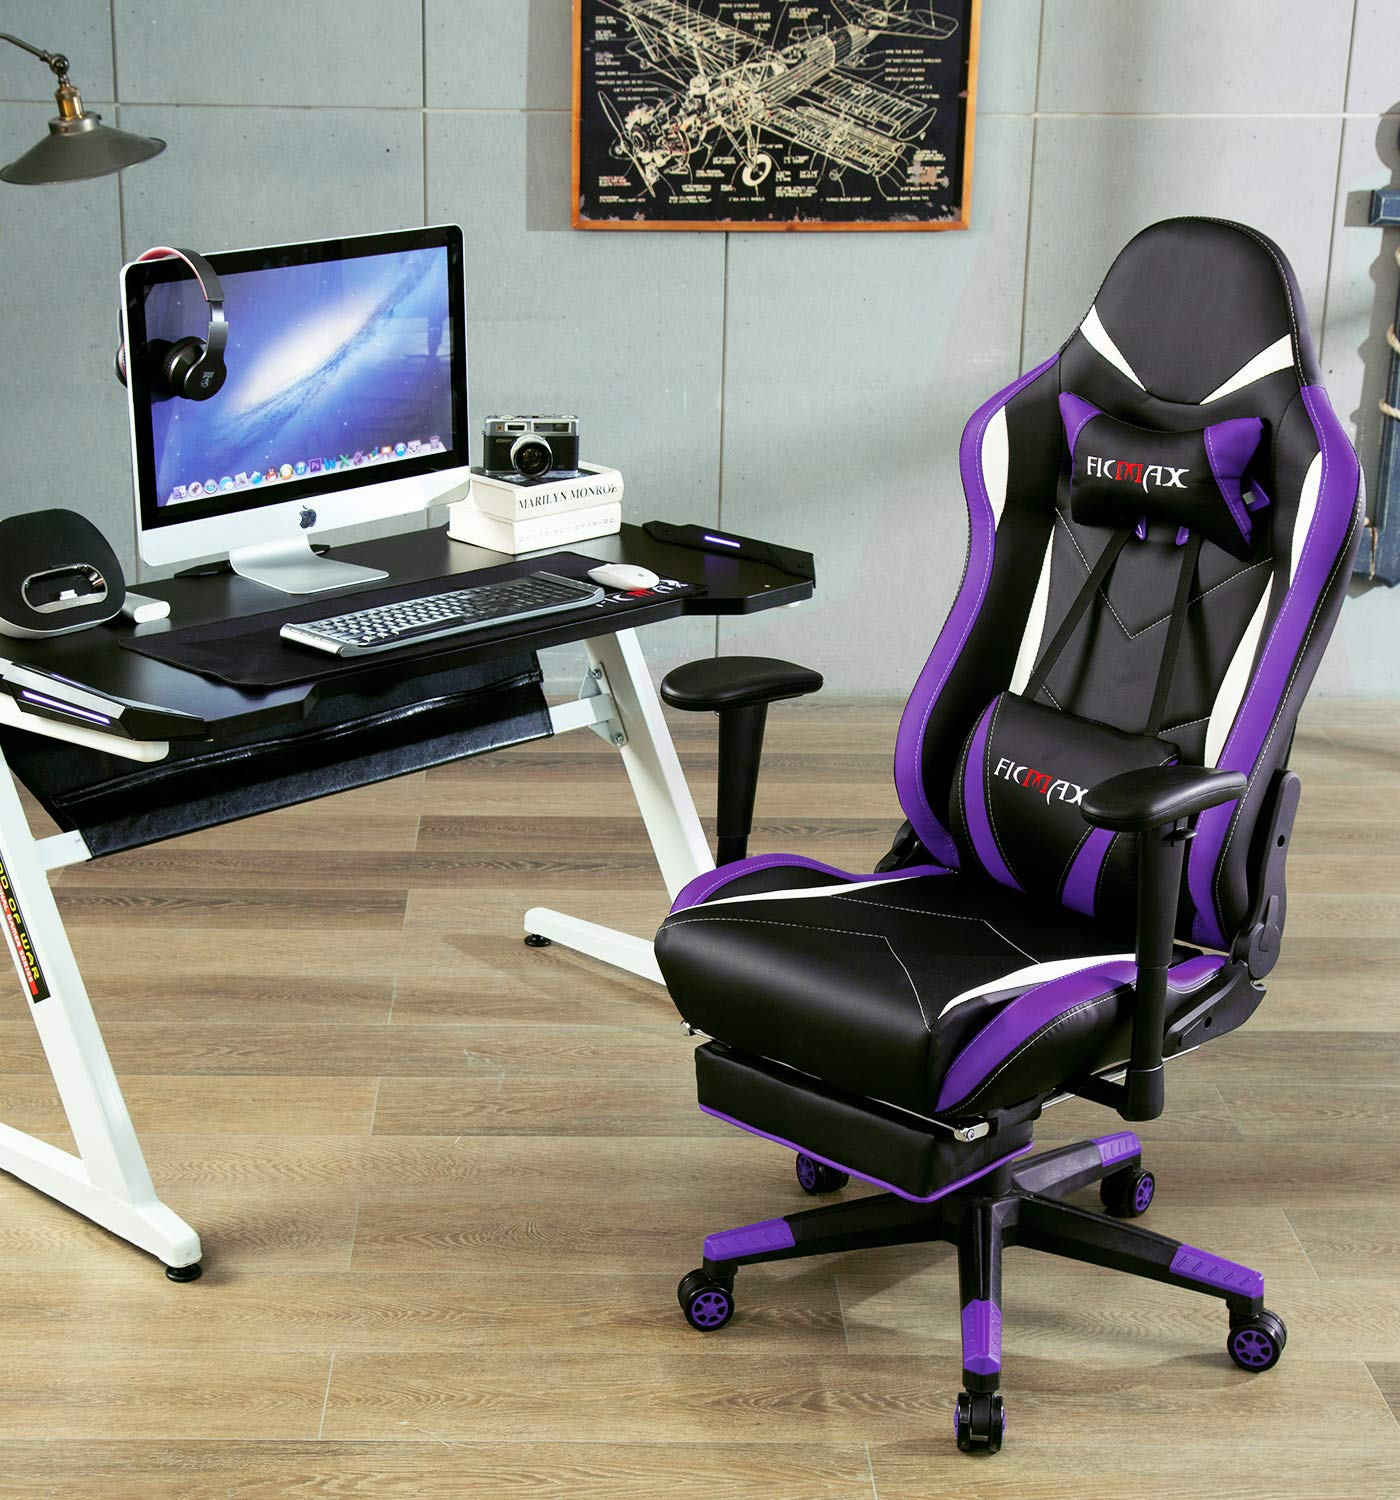 Ficmax Massage Gaming Chair with Footrest Ergonomic Gamer Chair for E-sport, Reclining Video Game Chair with Armrest Large Size High Back Computer Gaming Chair with Headrest and Lumbar Support Purple